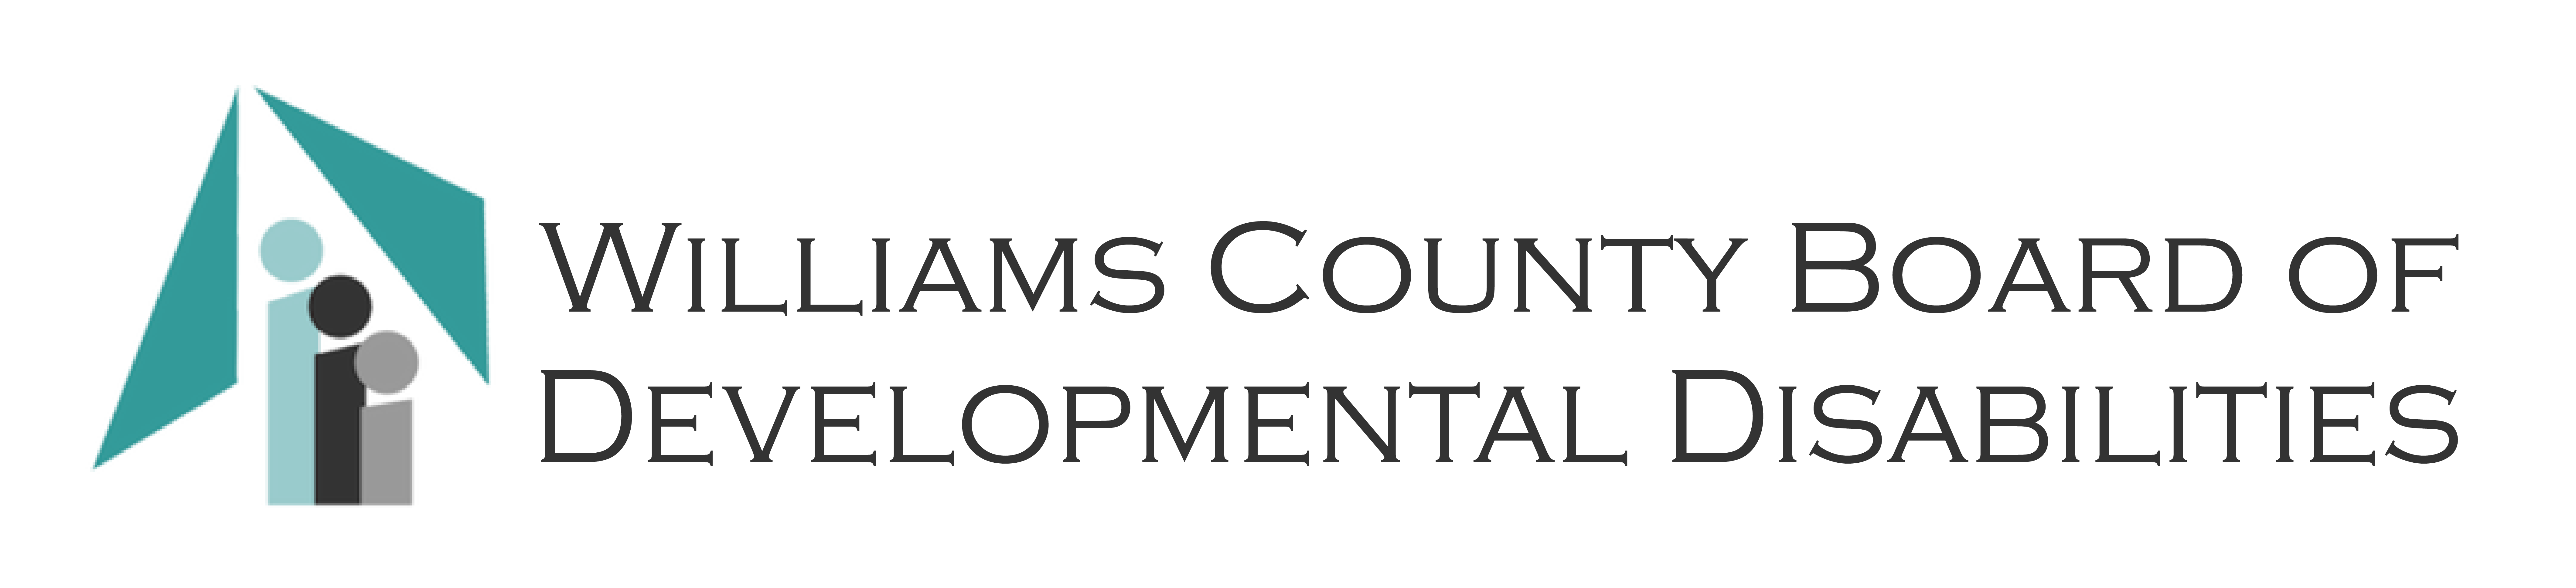 Williams County Board of DD